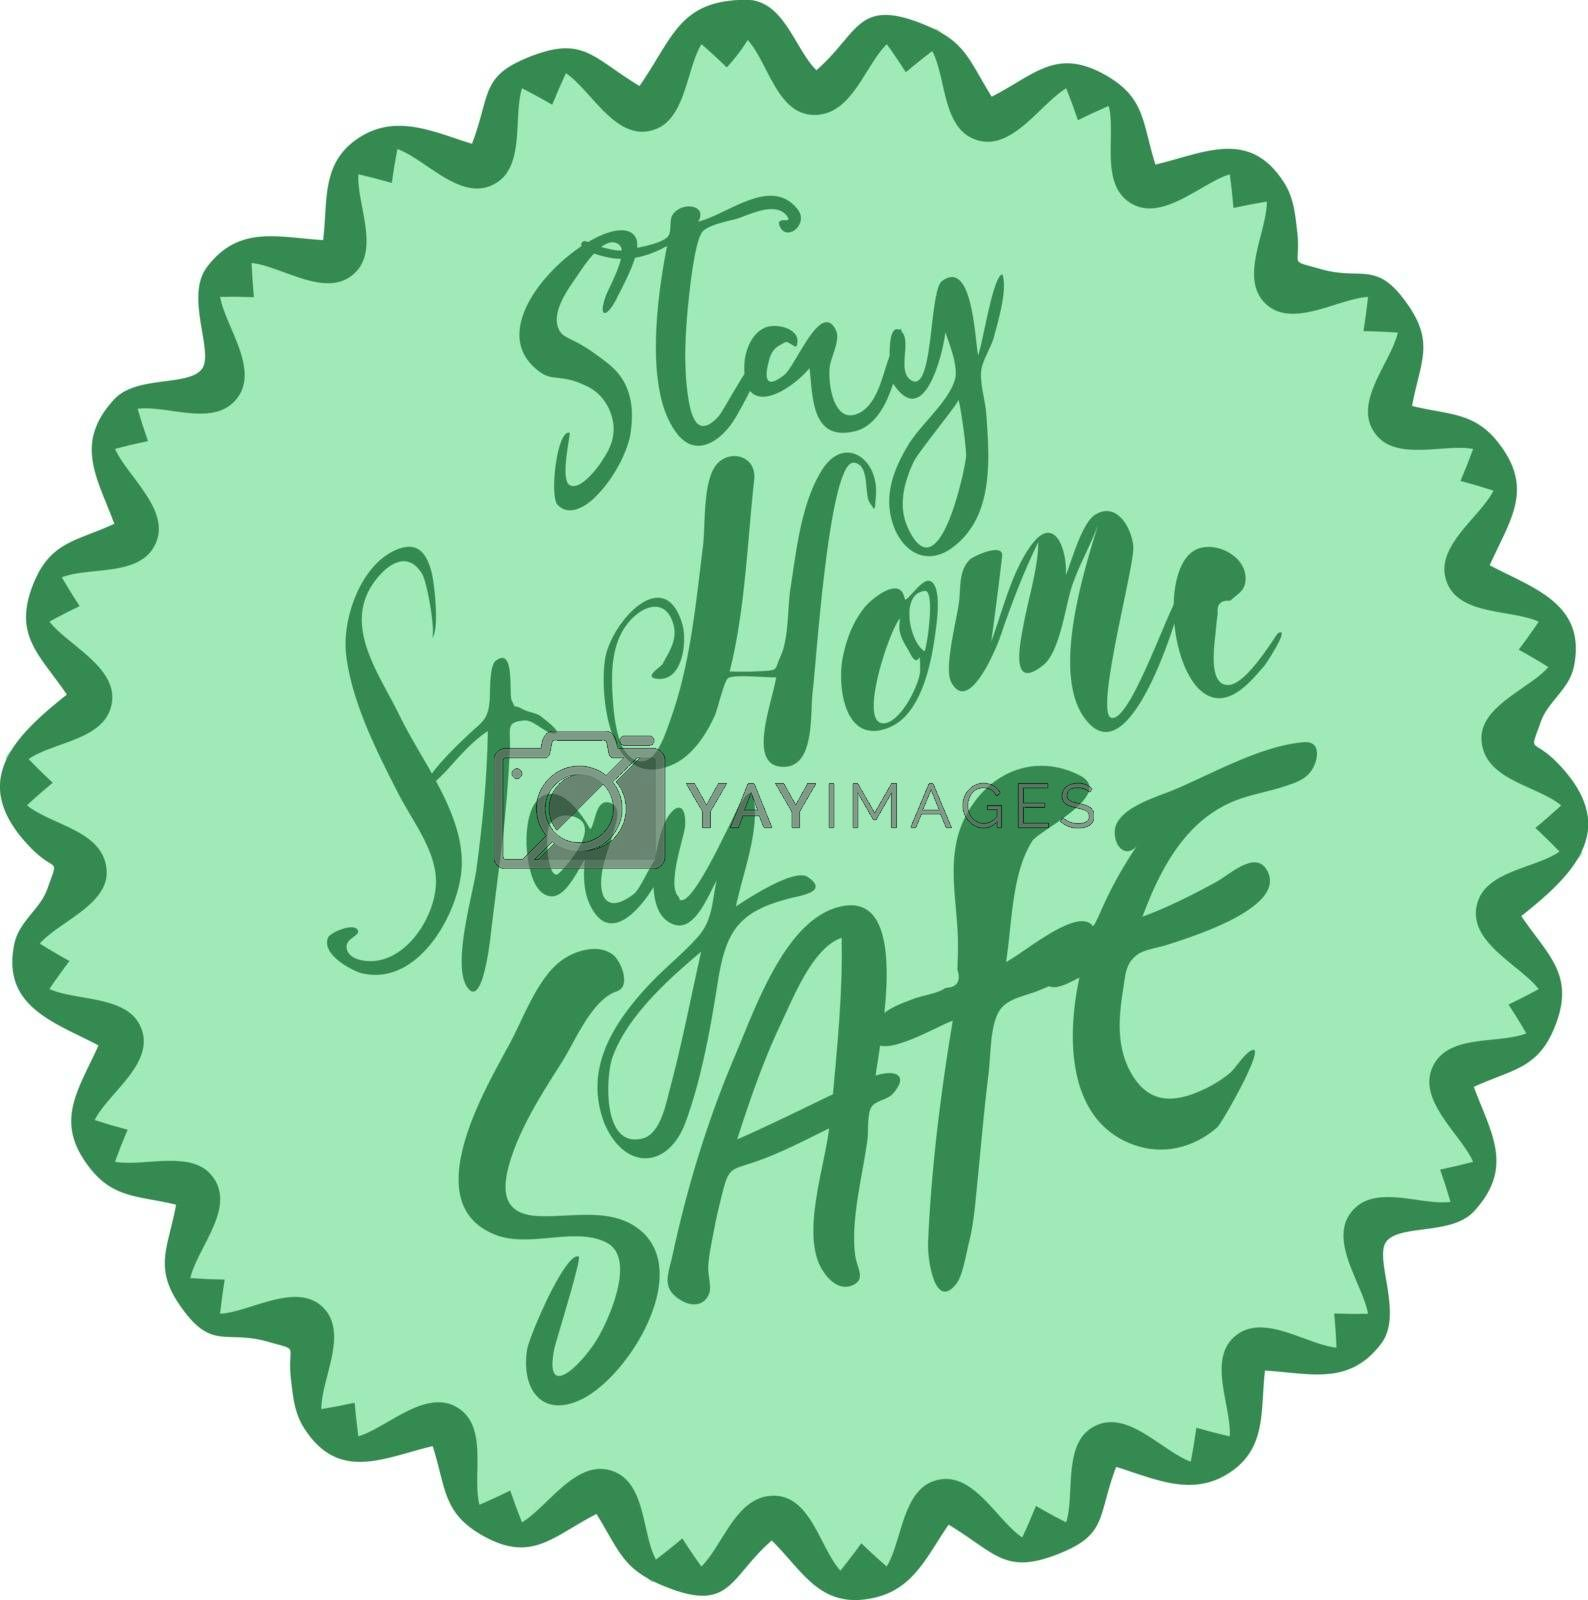 Cute lettering in green circle flower with text 'stay home stay safe'